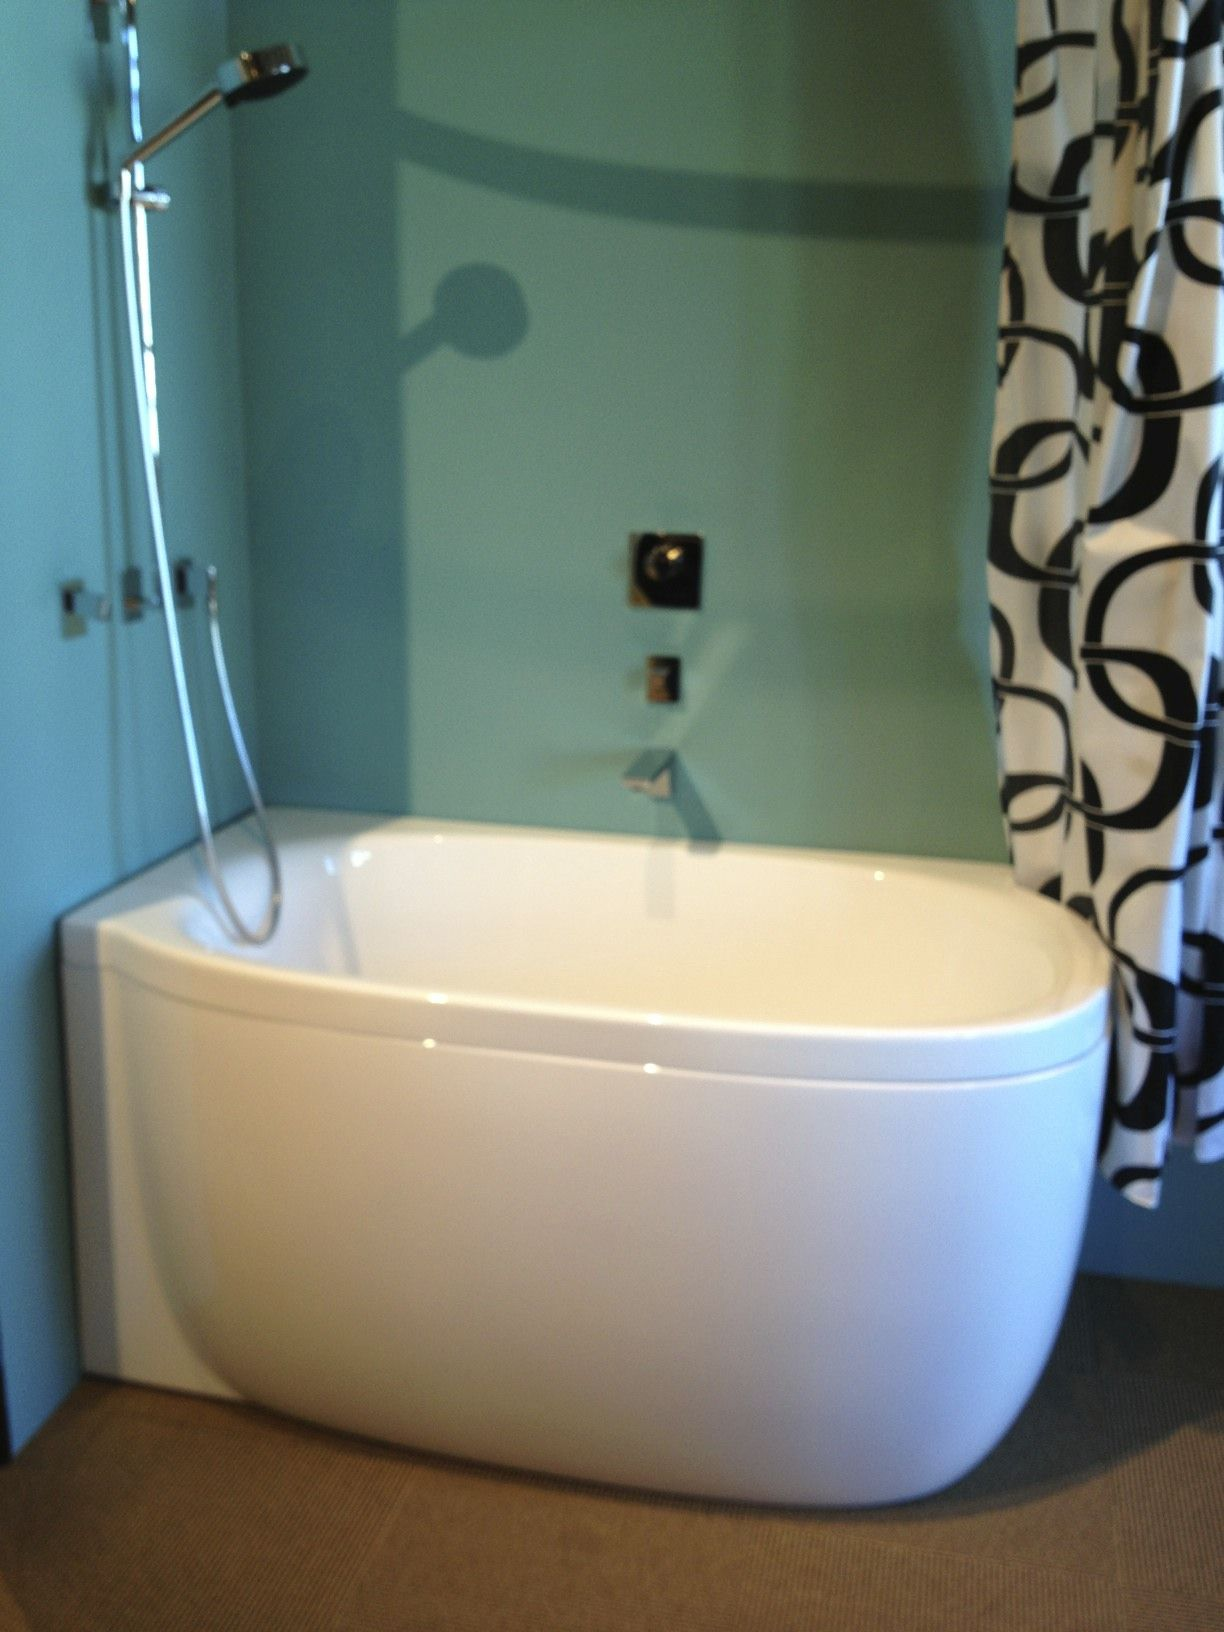 Tiny Bathtub For Kids Bathroom Great Space Saver For Small